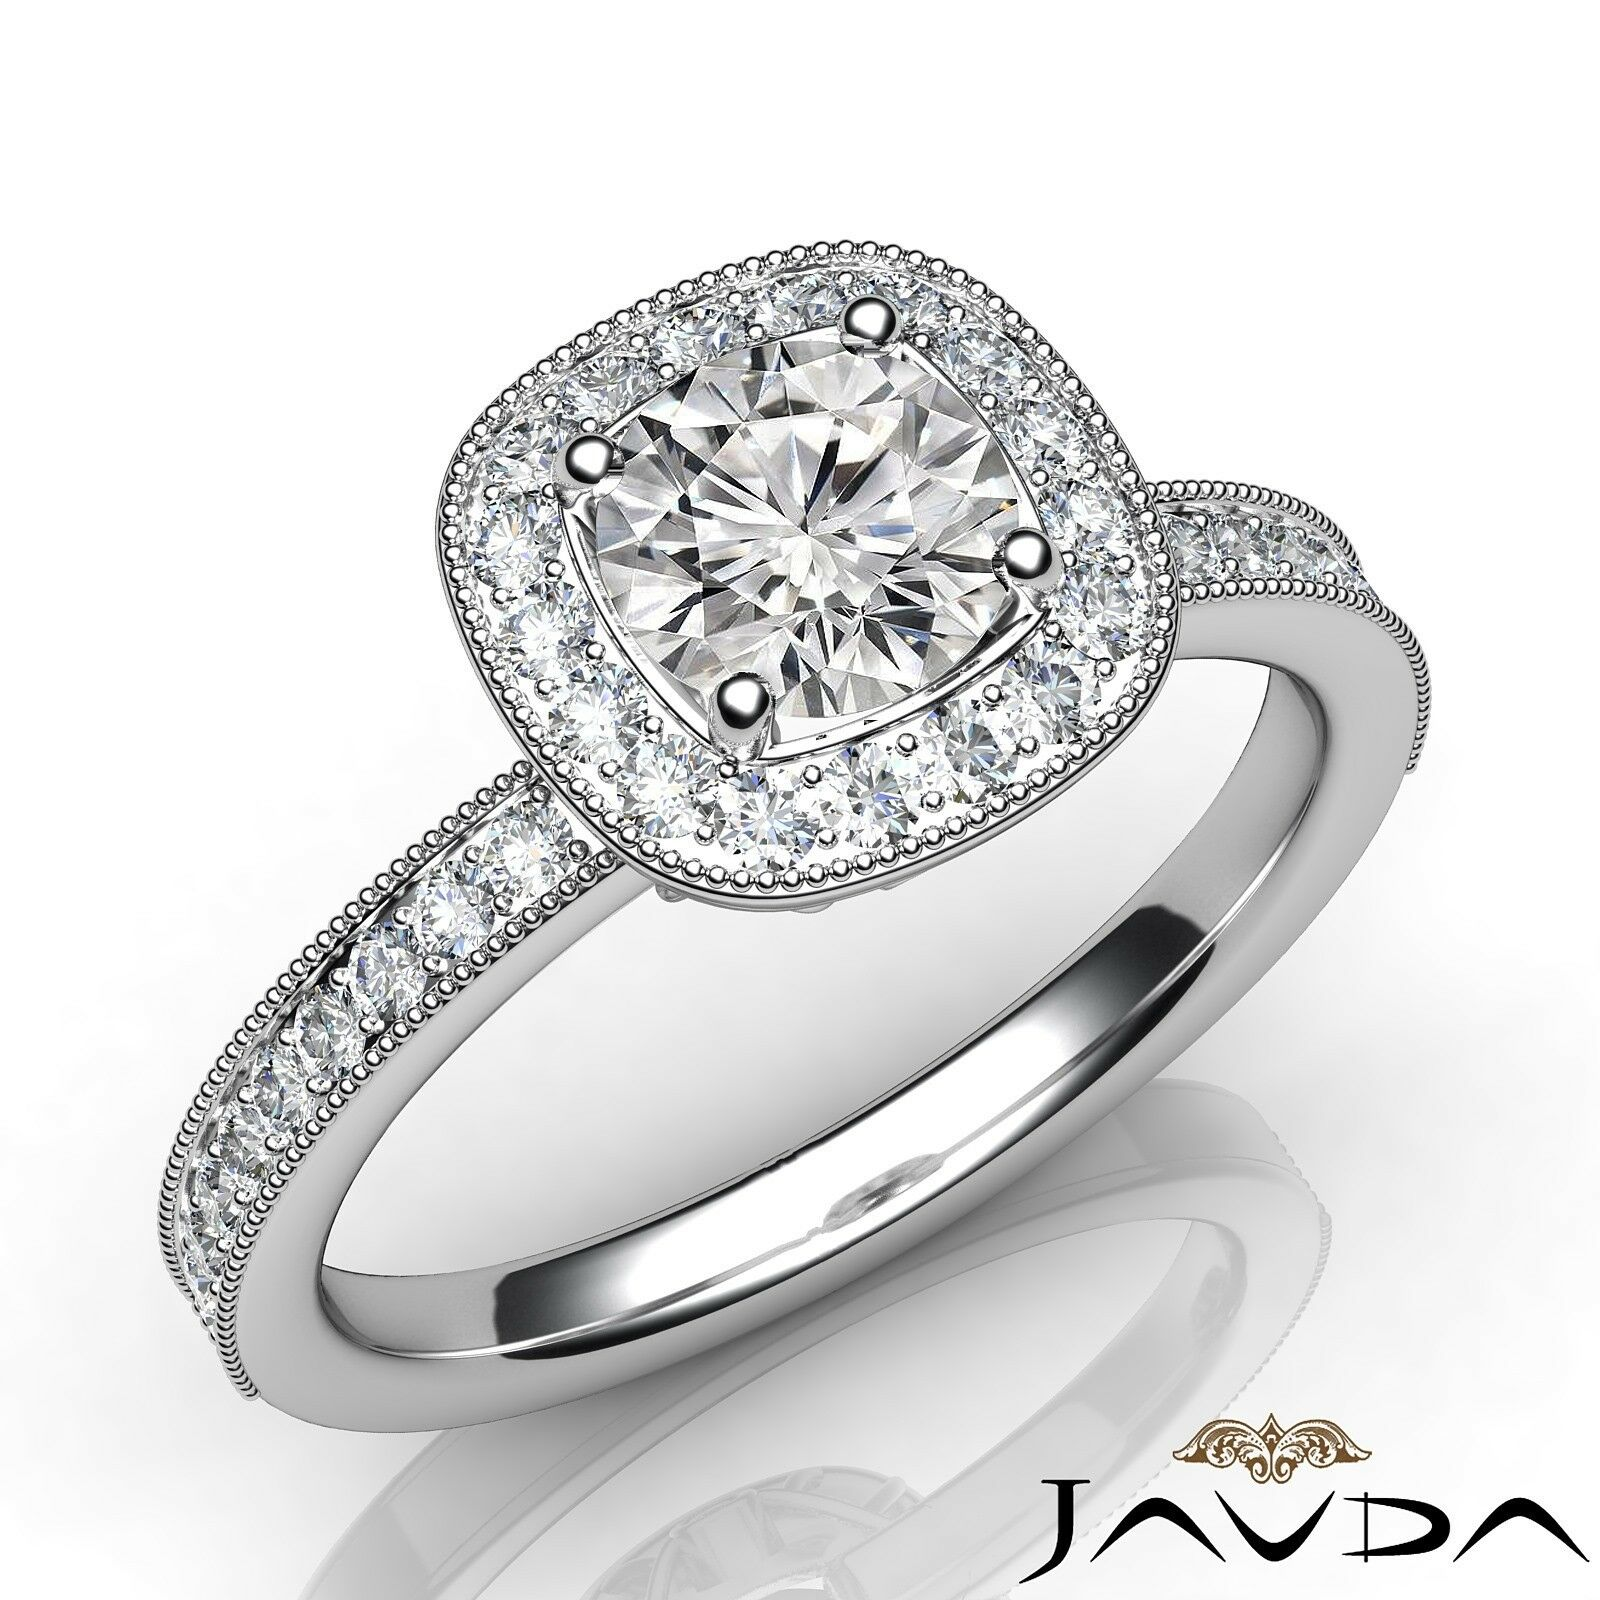 0.9ctw Micro Pave Round Diamond Engagement Ring GIA F-VVS1 White Gold Women New